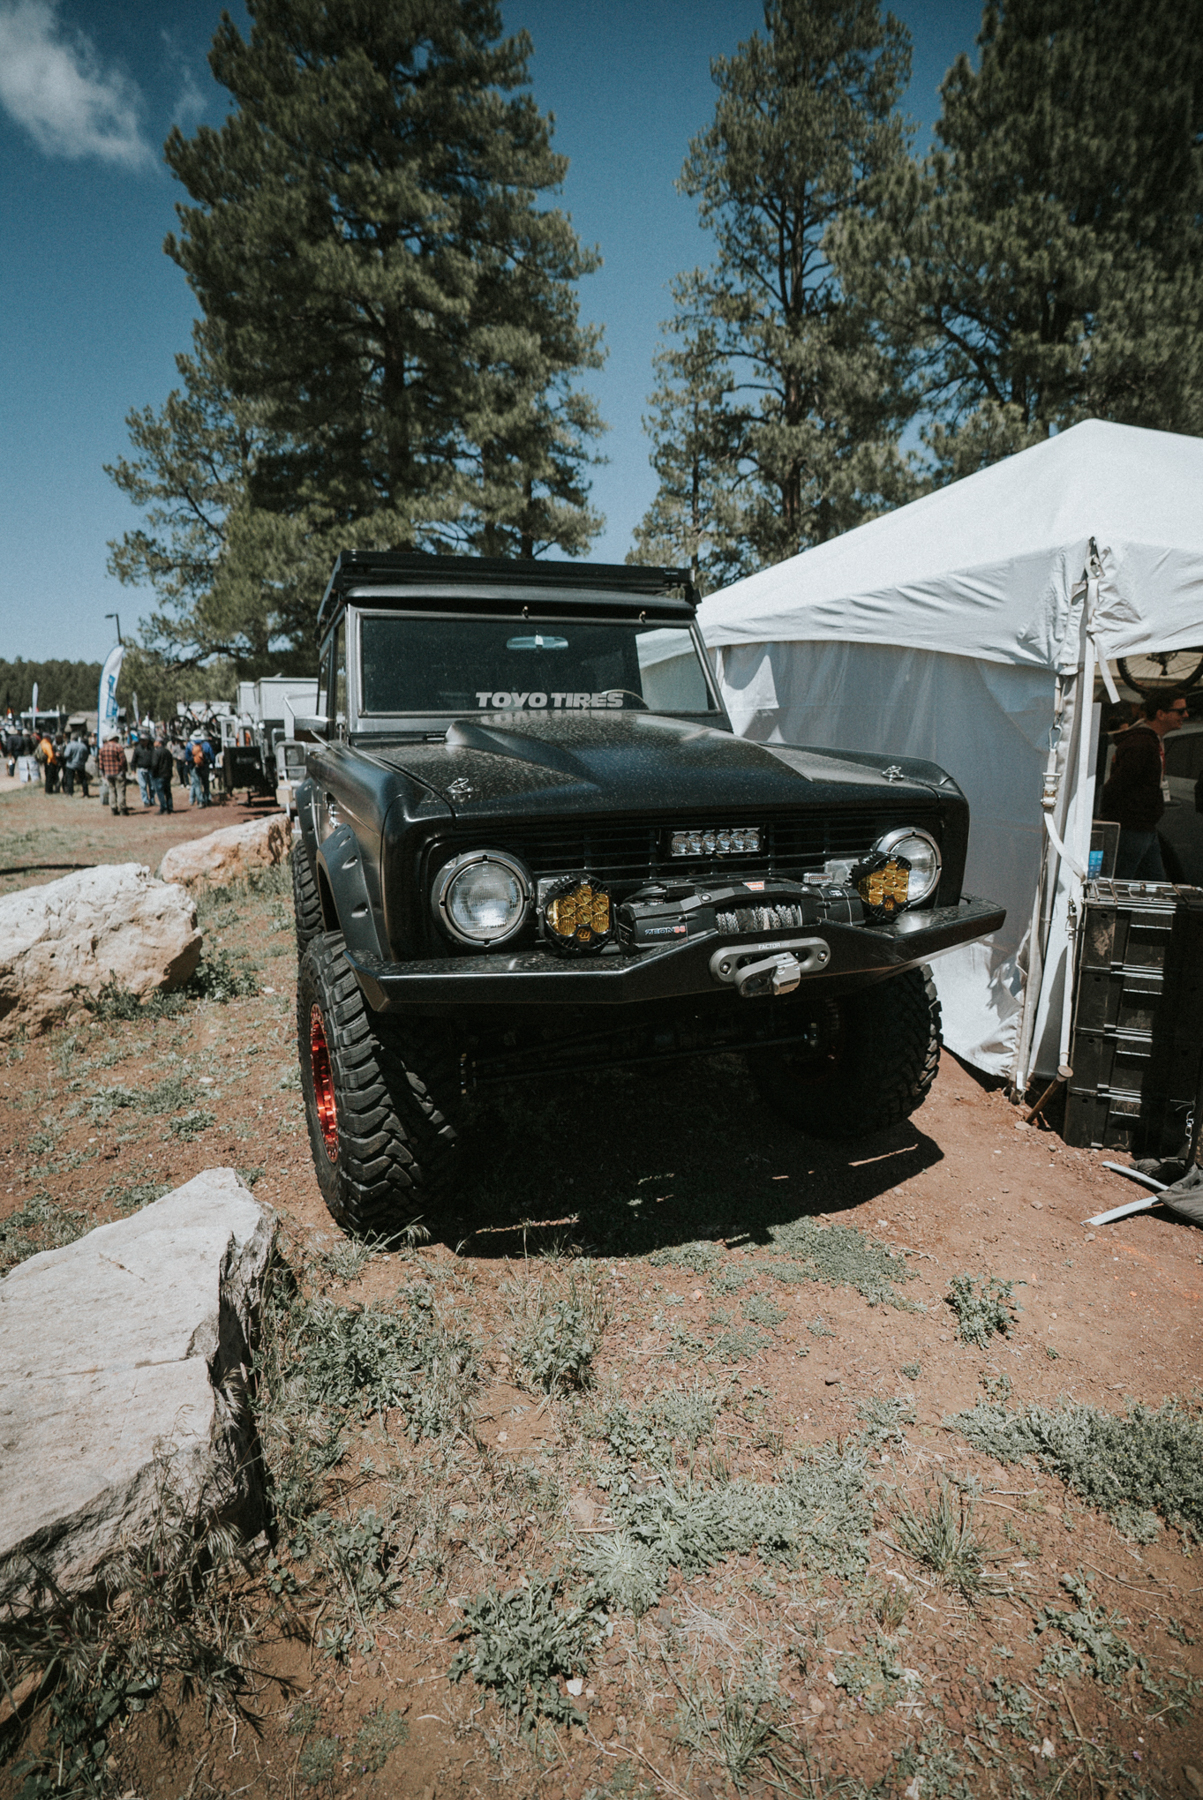 overland_expo_roaming_lost-1.jpg